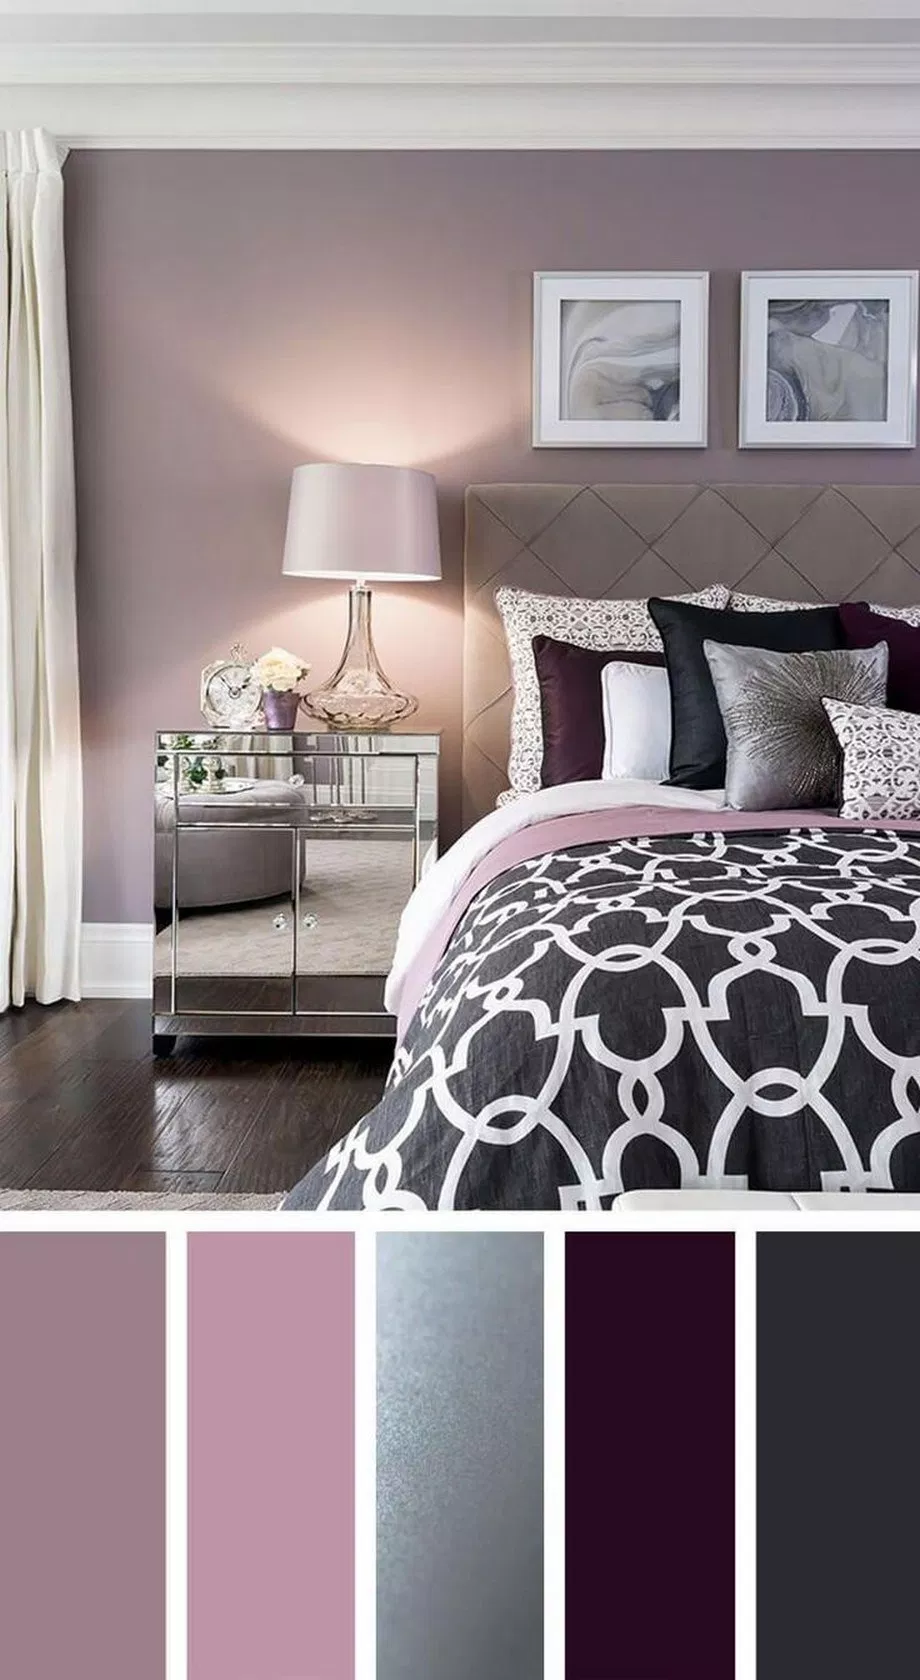 Romantic Bedroom Color Ideas: 34 Romantic Bedroom Ideas For Couples #couplesbedroomideas